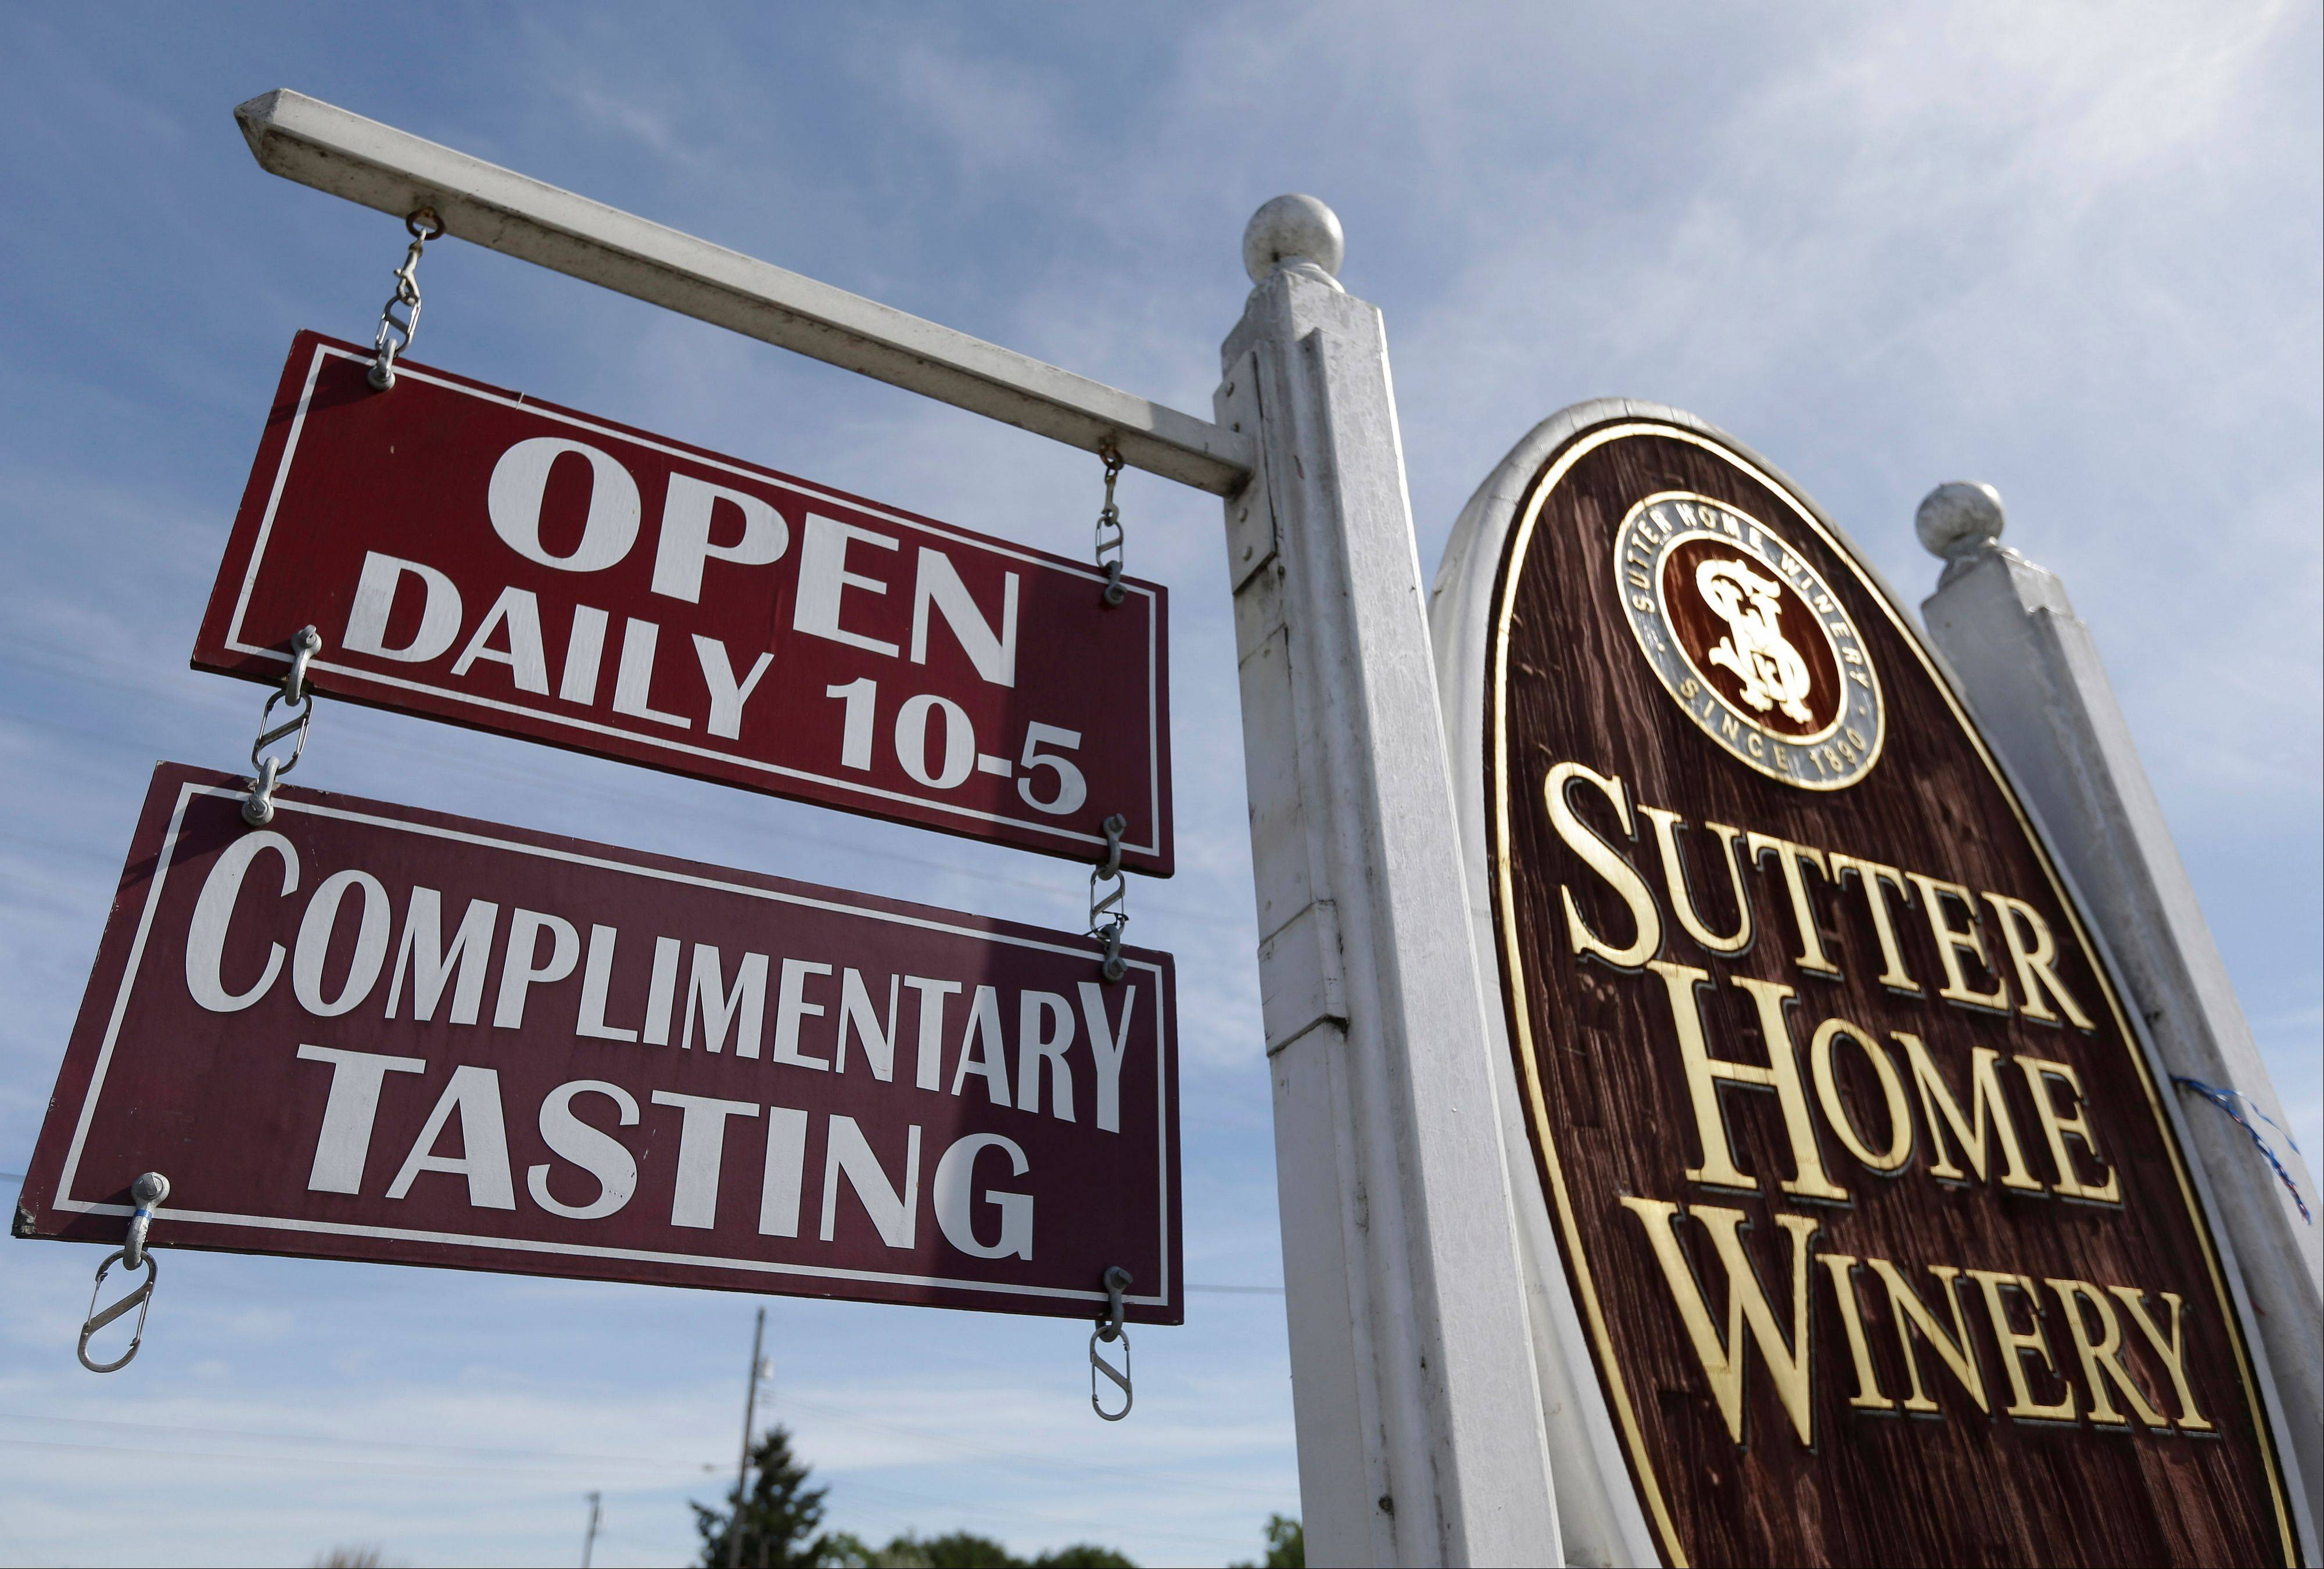 A sign for complimentary tastings hangs outside Sutter Home Winery in St. Helena, Calif.